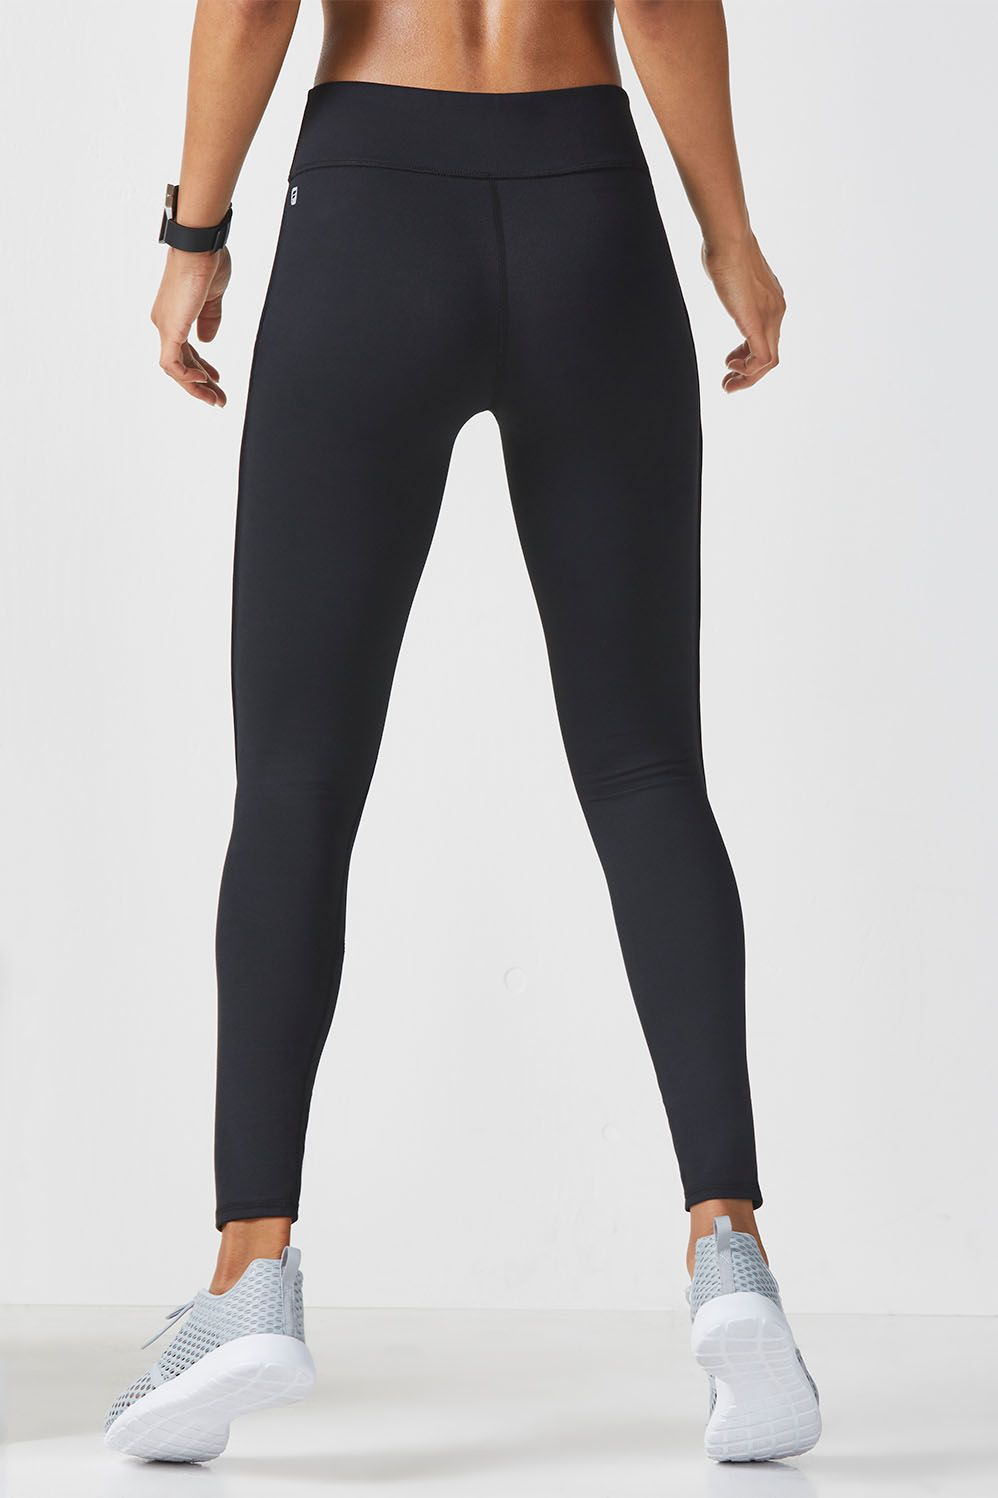 ba396223a17a01 Barcelona Legging - Fabletics has pockets Best Leggings For Women, Tight  Leggings, Women's Leggings